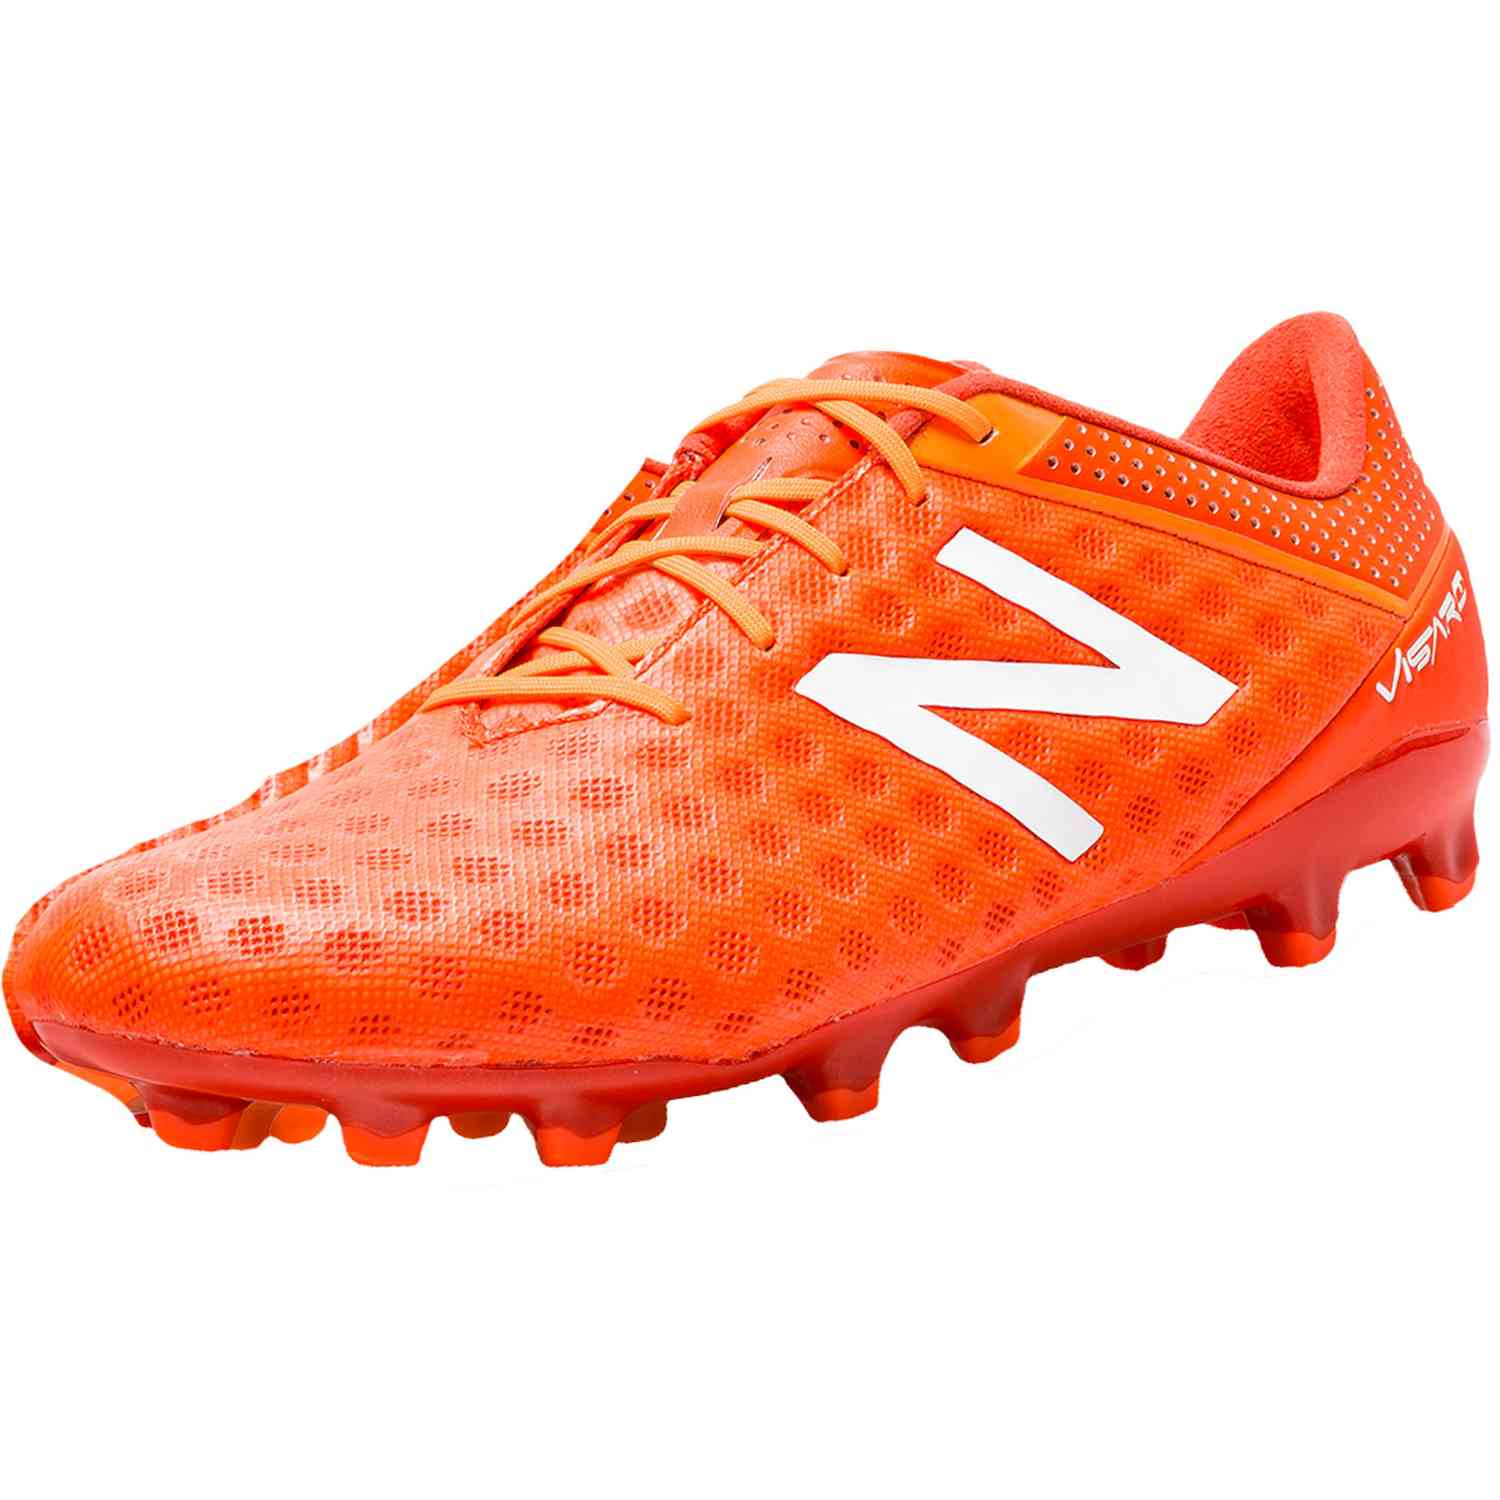 e8c8919c5cf48 New Balance Visaro FG Cleats - Orange NB Soccer Shoes